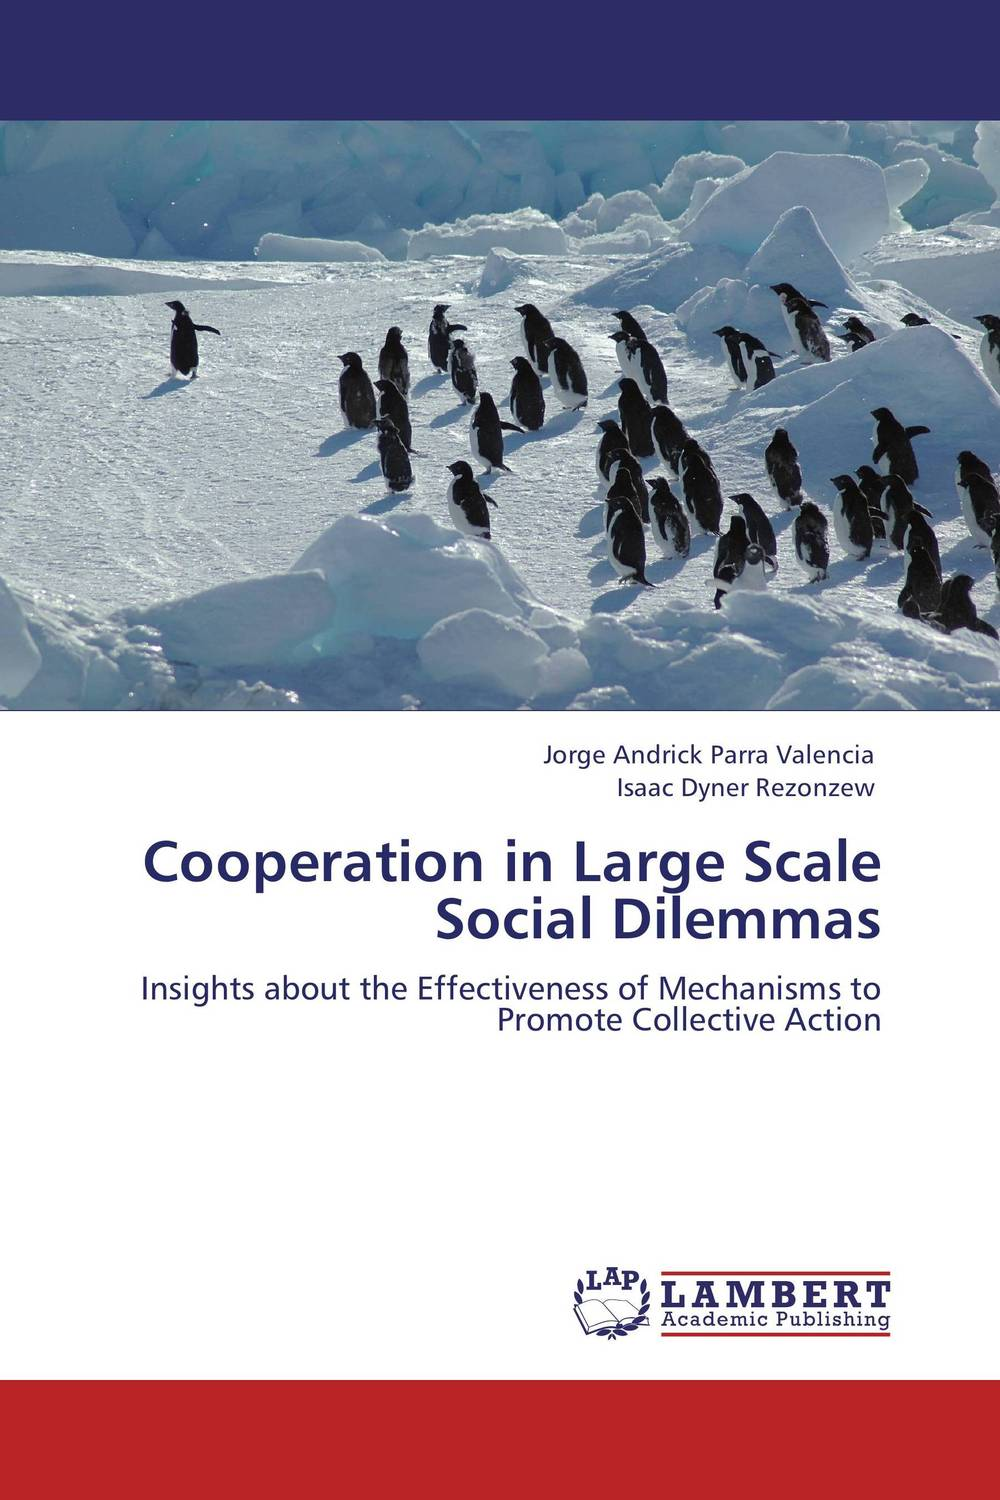 Cooperation in Large Scale Social Dilemmas